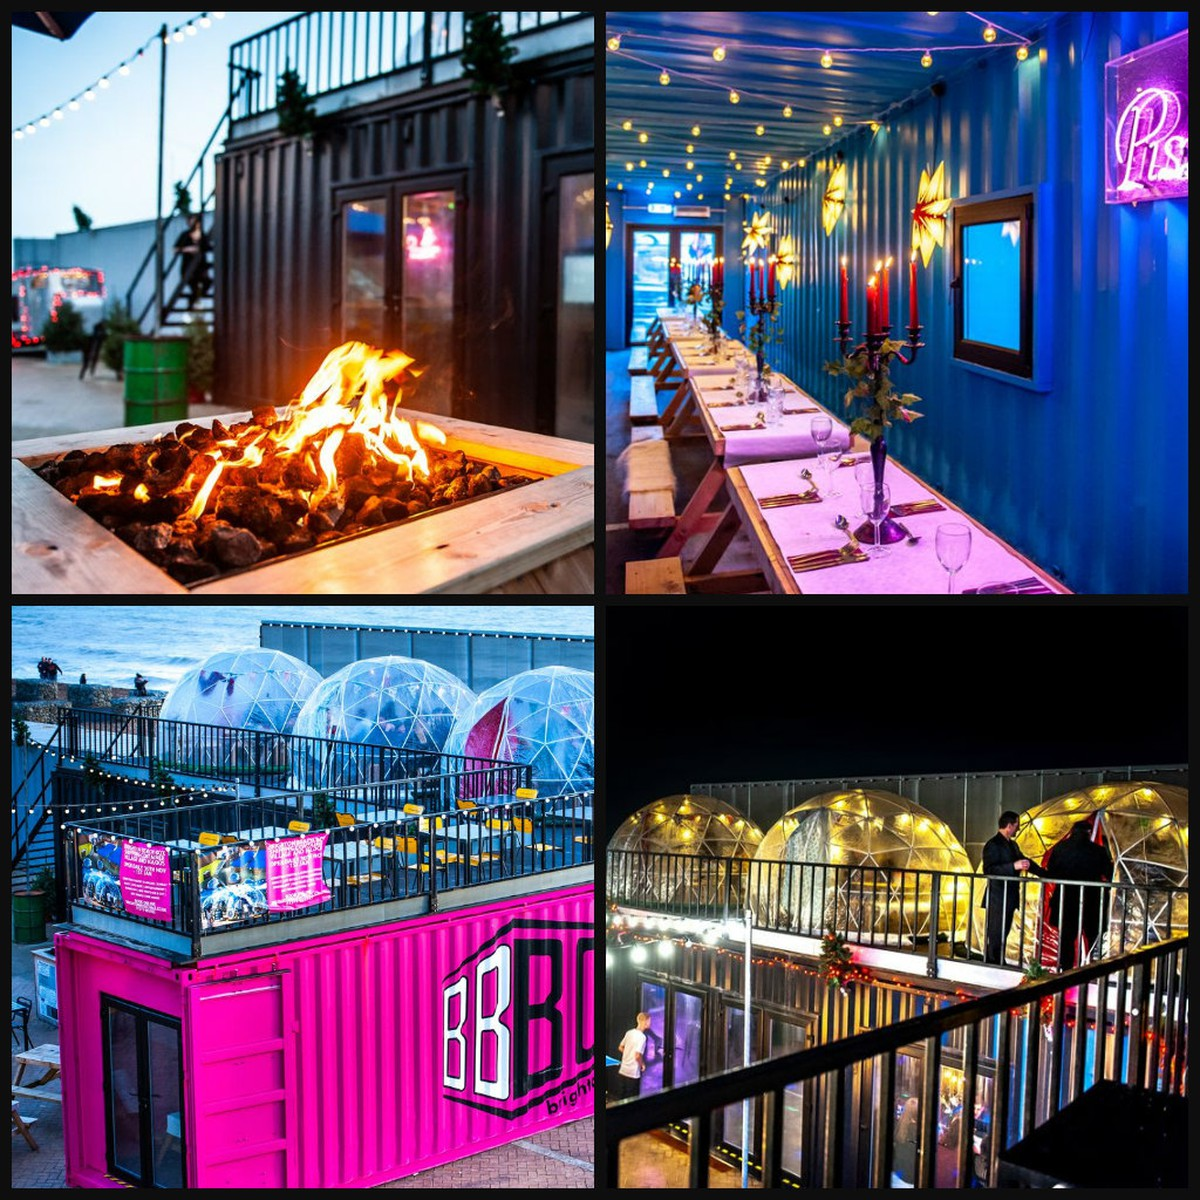 Secondhand Portable Buildings Canteens And Cafes Huge Shipping Container Restaurant With Roof Terrace Liverpool Merseyside